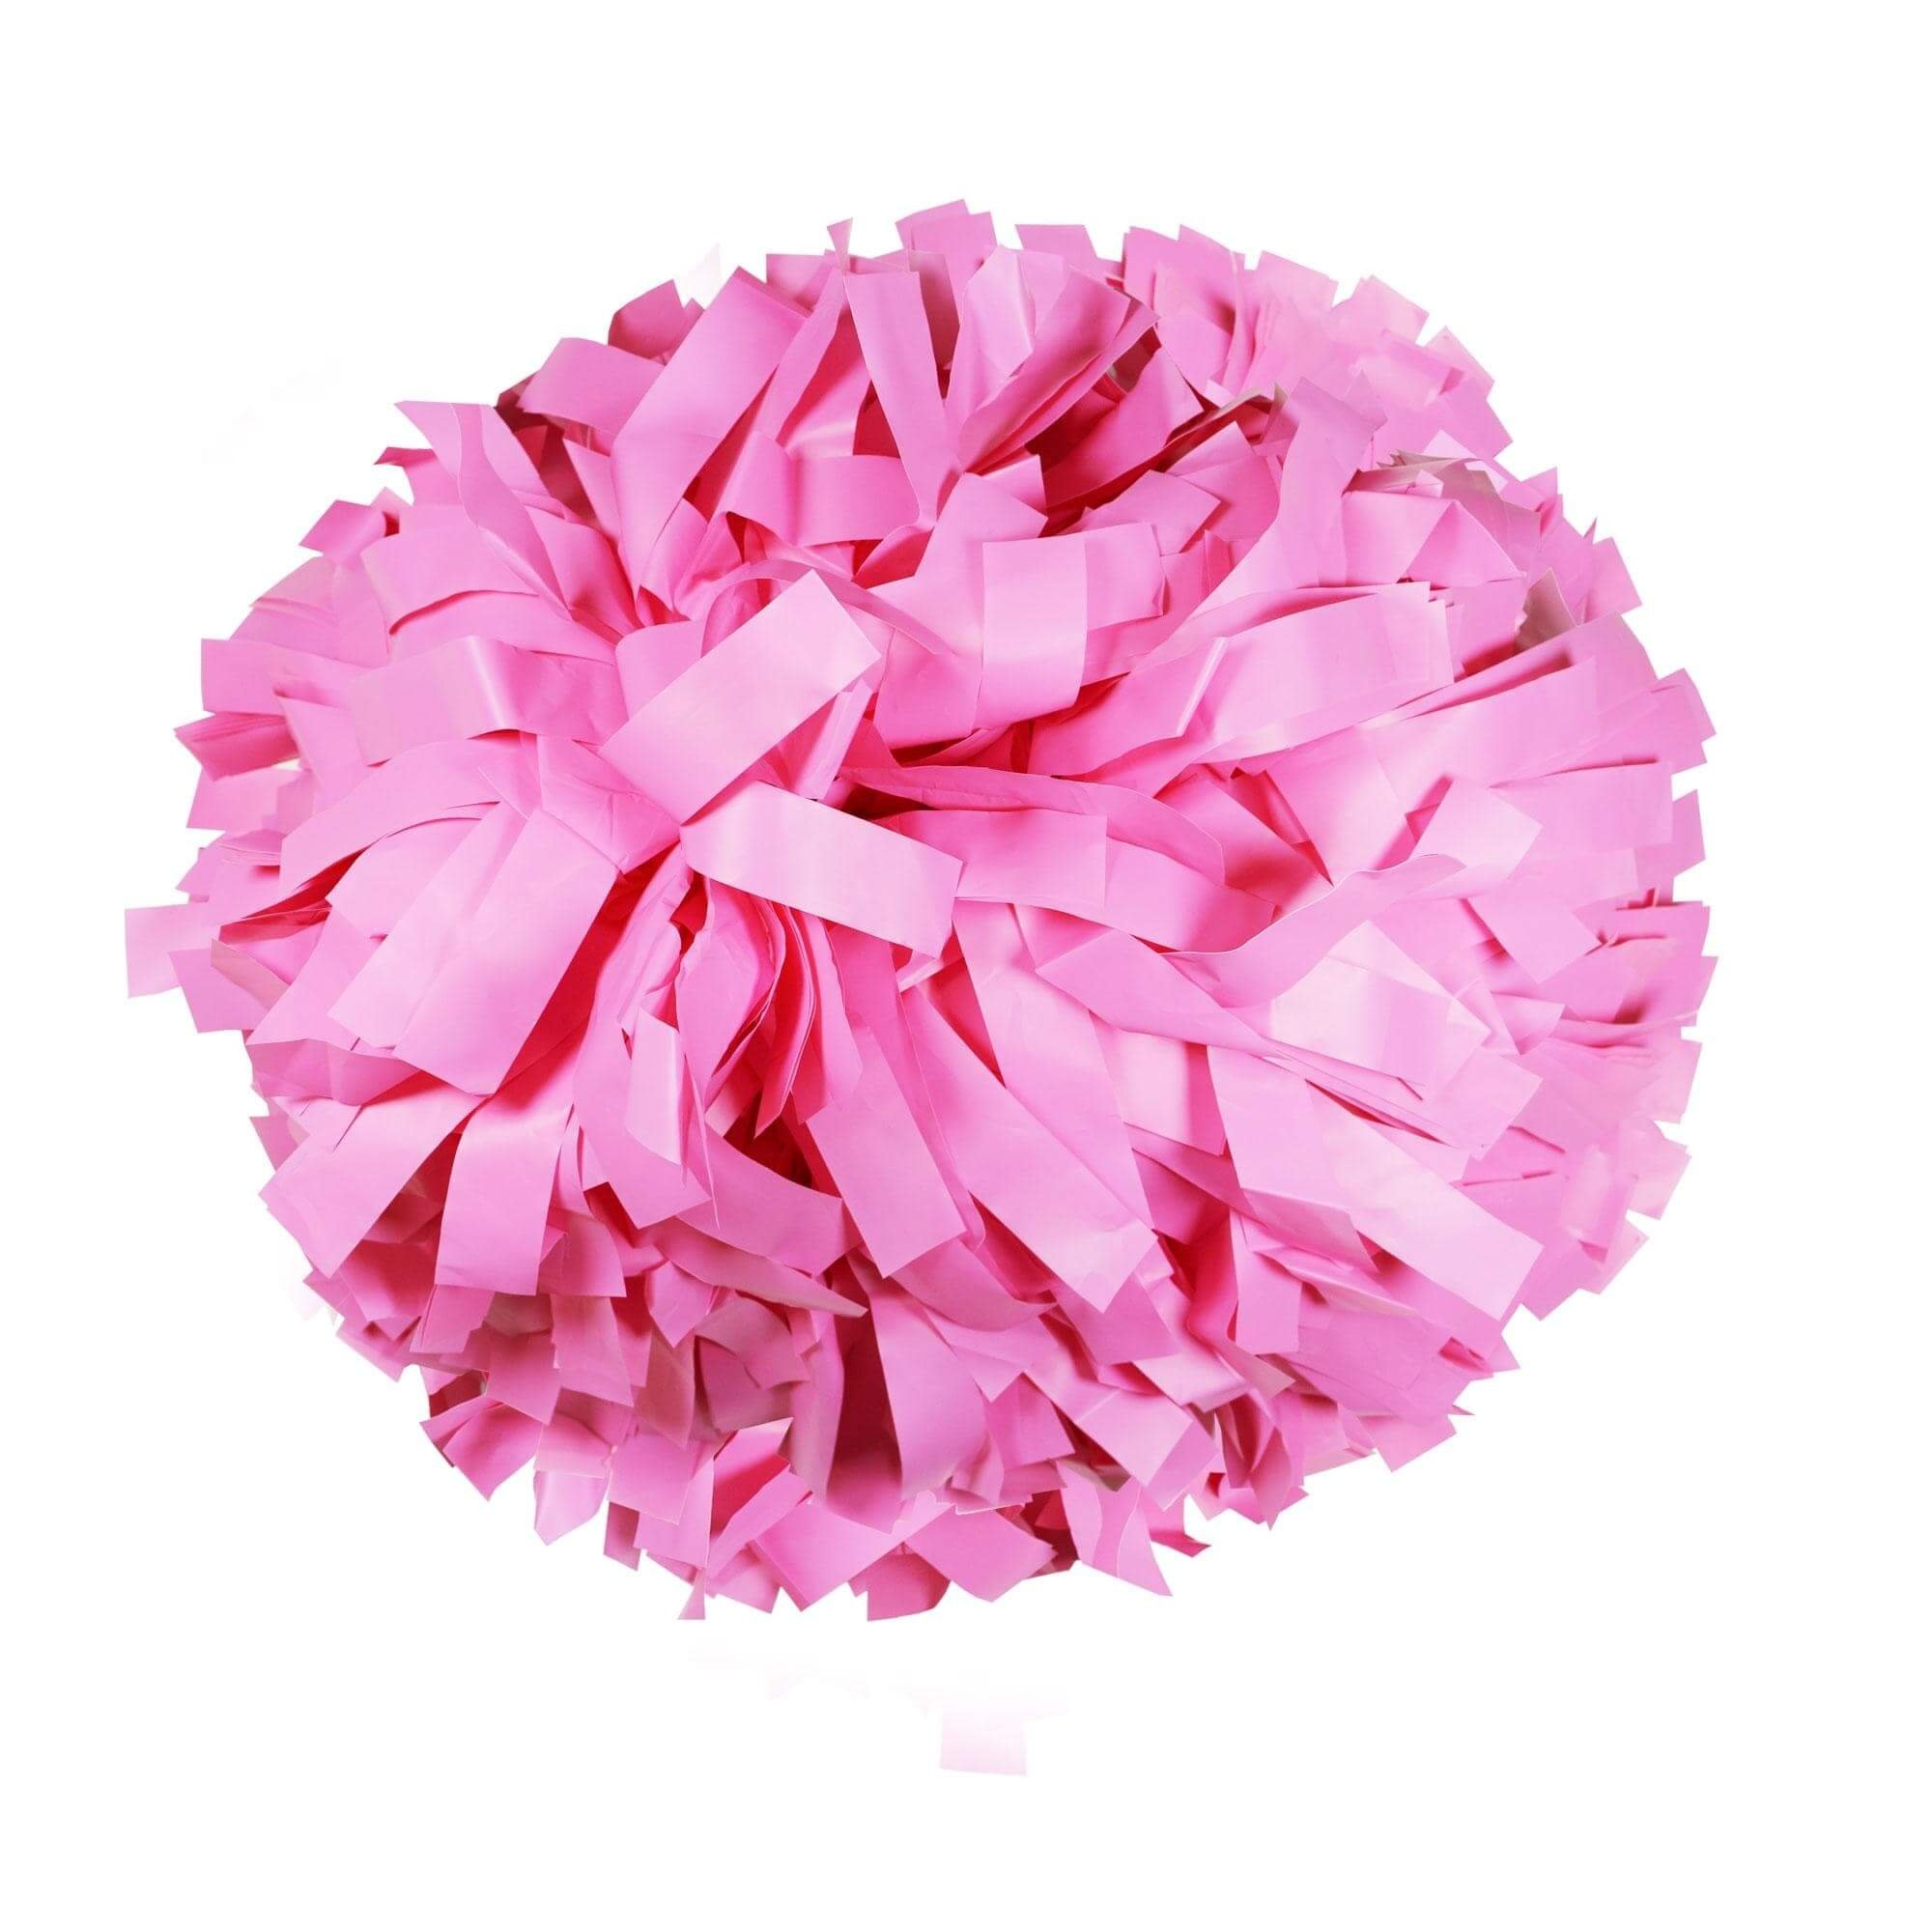 Danzcue Neon Pink Plastic Poms - One Pair